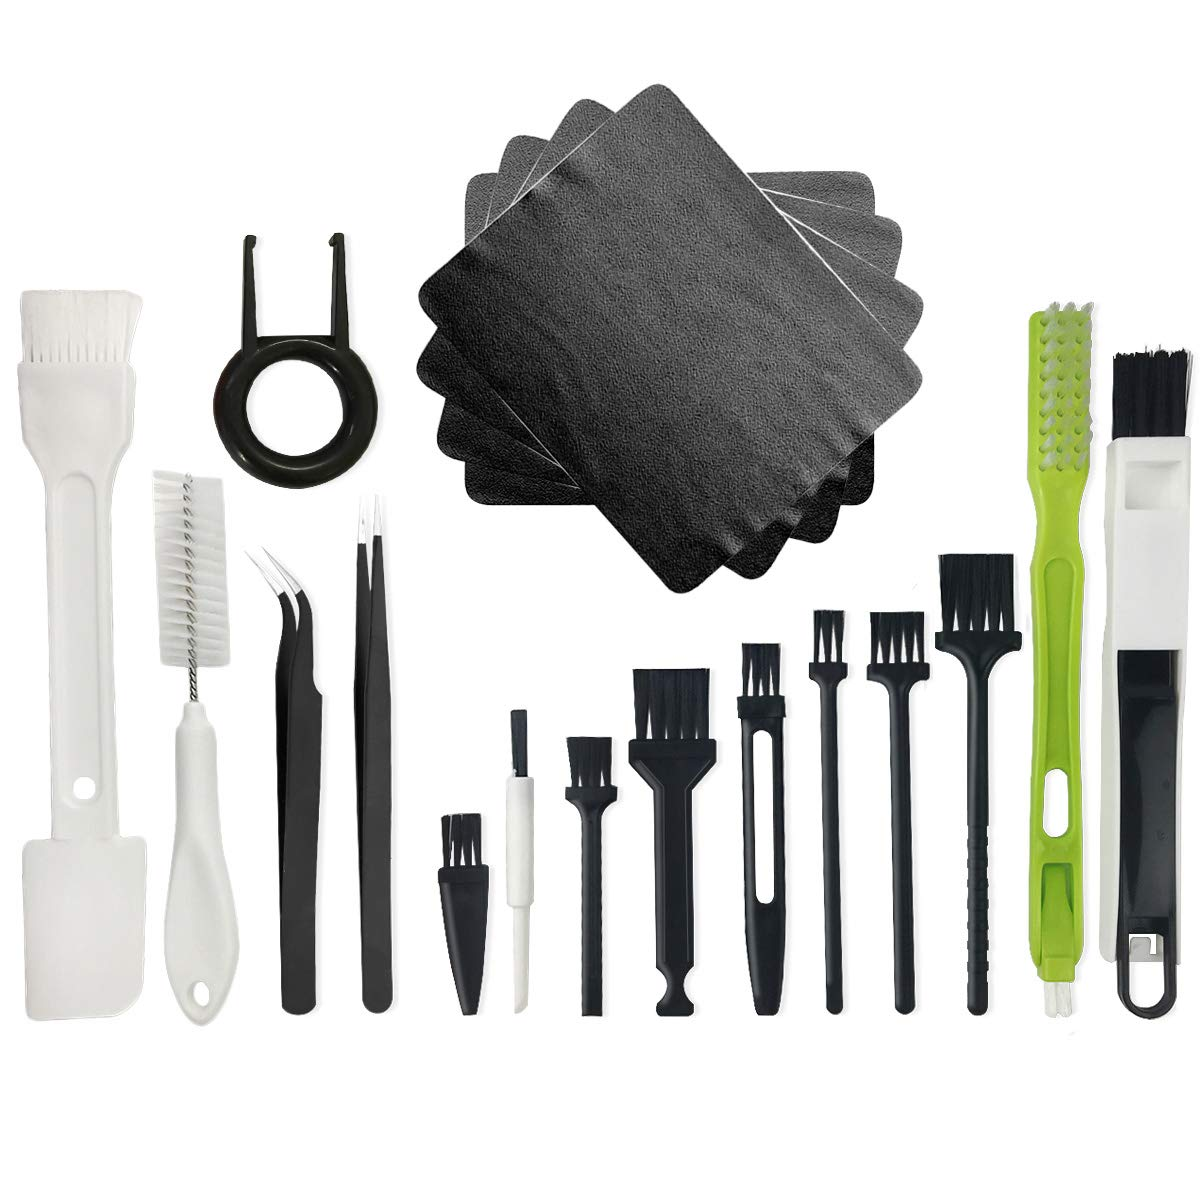 Plastic Handle Nylon Anti Static Brushes Cleaning Keyboard Car Seat Wall Gap Water Cup Home Appliances Brush Cloth Puller Tweezers Kit (Set of 19)